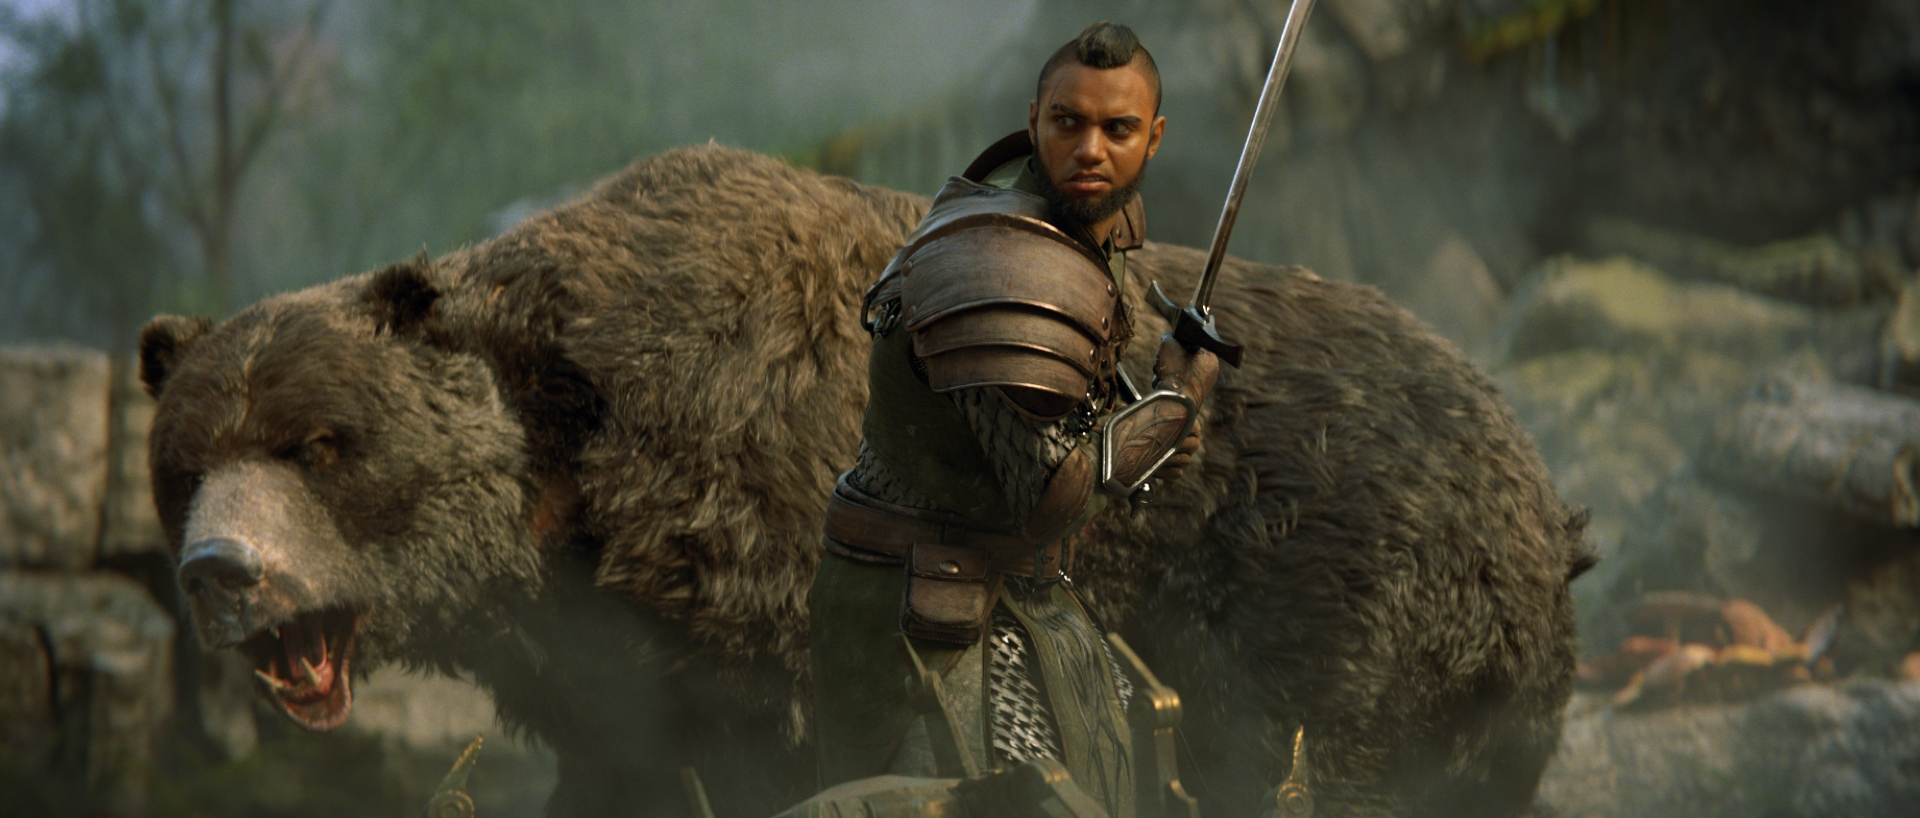 Elder Scrolls Online: Morrowind gets early access launch for PC and Mac